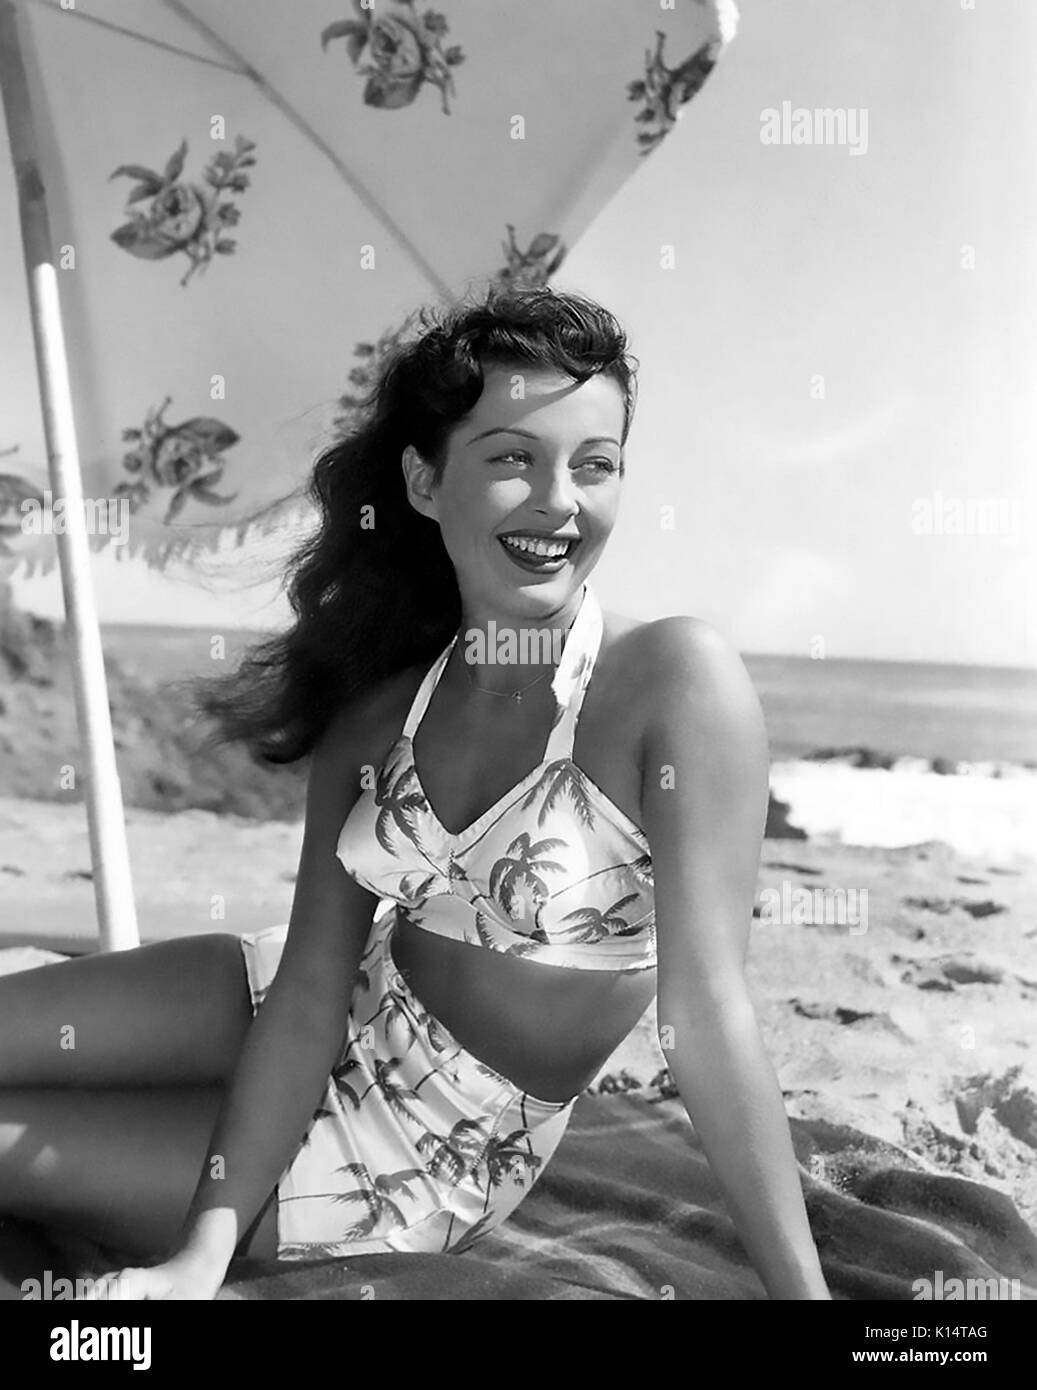 GAIL RIUSSELL (1924-1961) US film actress about 1945 - Stock Image